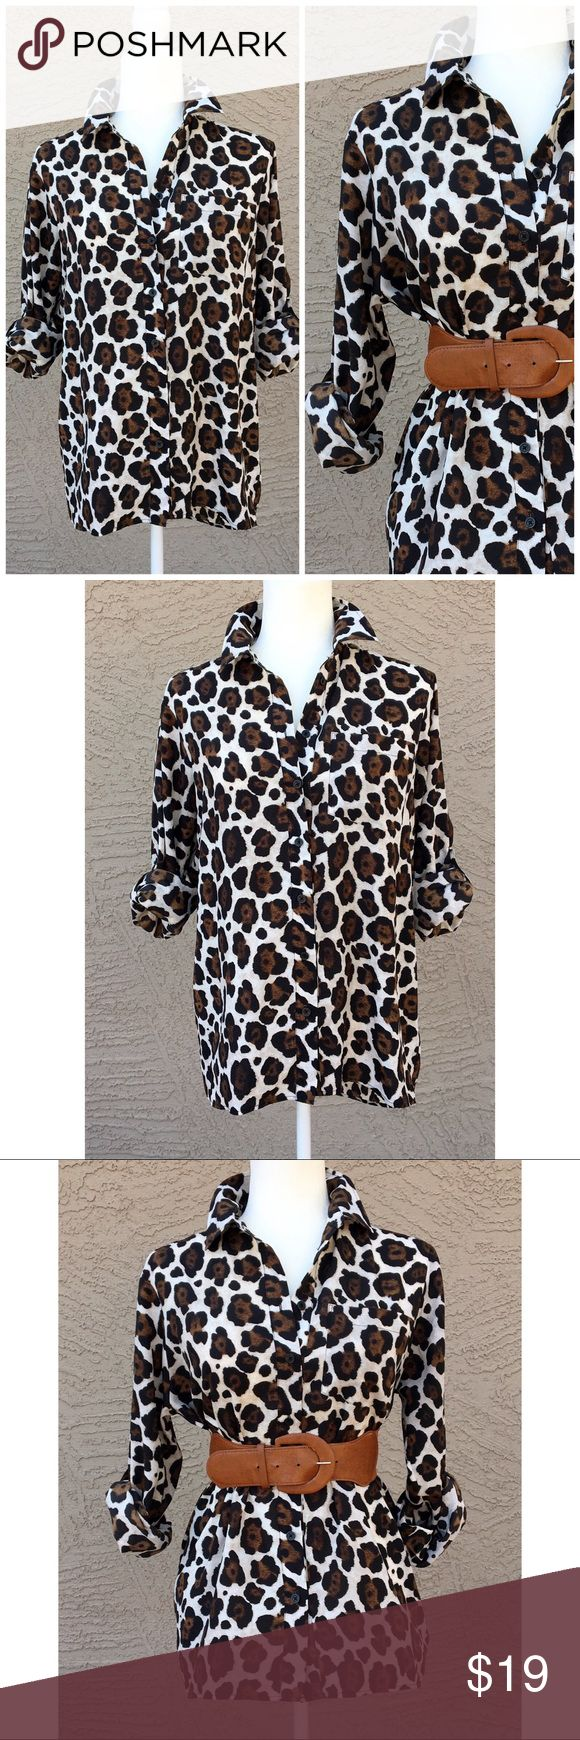 "MICHAEL Michael Kors Animal Print Blouse Brown, Black and white animal print buttons down Blouse. Pull tab/ roll-up sleeves. Front length: 25"", Back Length: 29"", Pit to Pit: 21.5"". ✨OFFERS WELCOME✨ MICHAEL Michael Kors Tops Blouses"